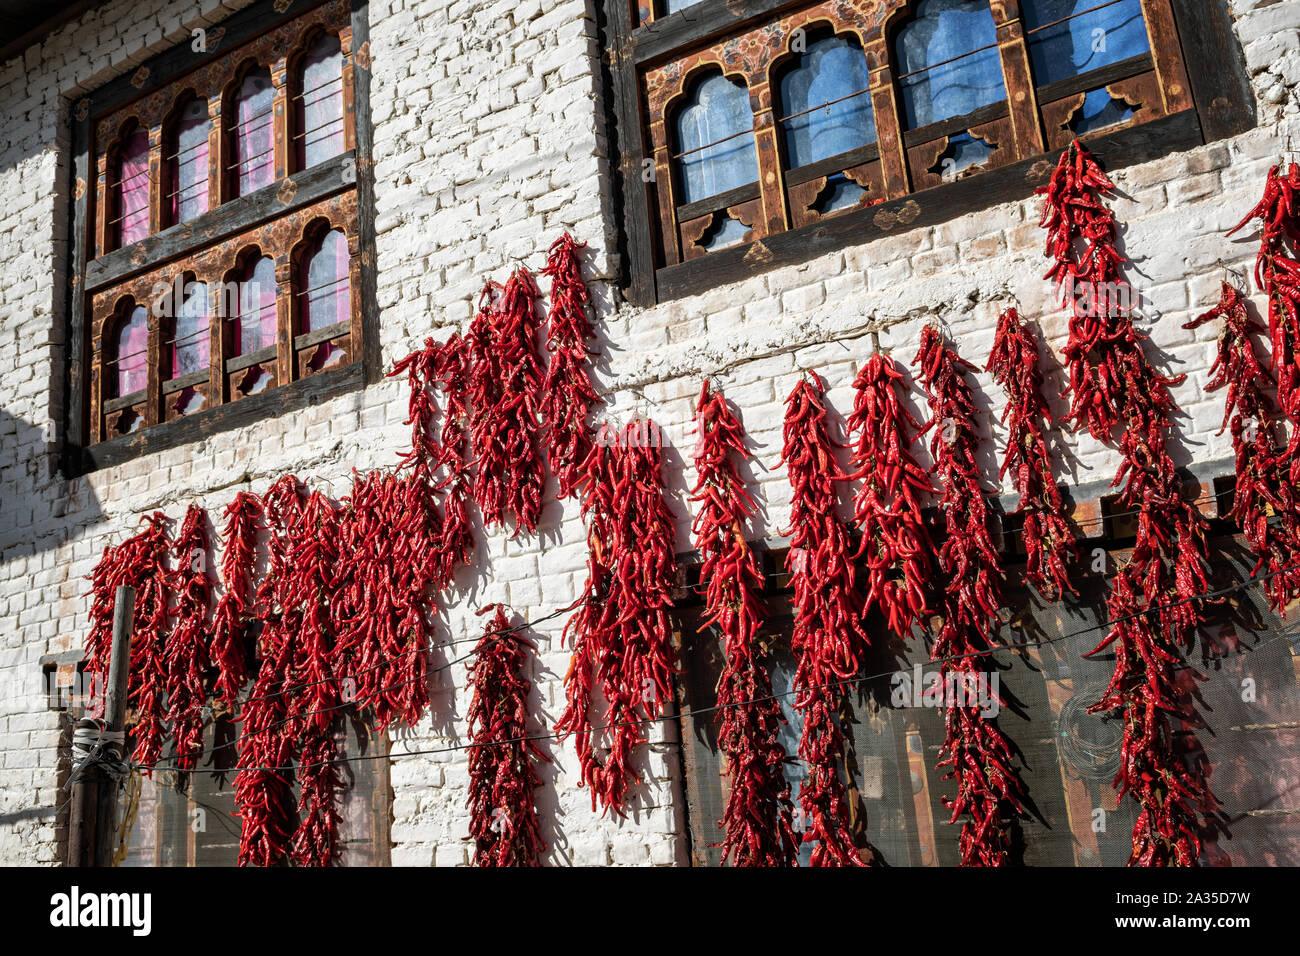 Red hot chilli peppers drying in the sun in Paro, Bhutan Stock Photo